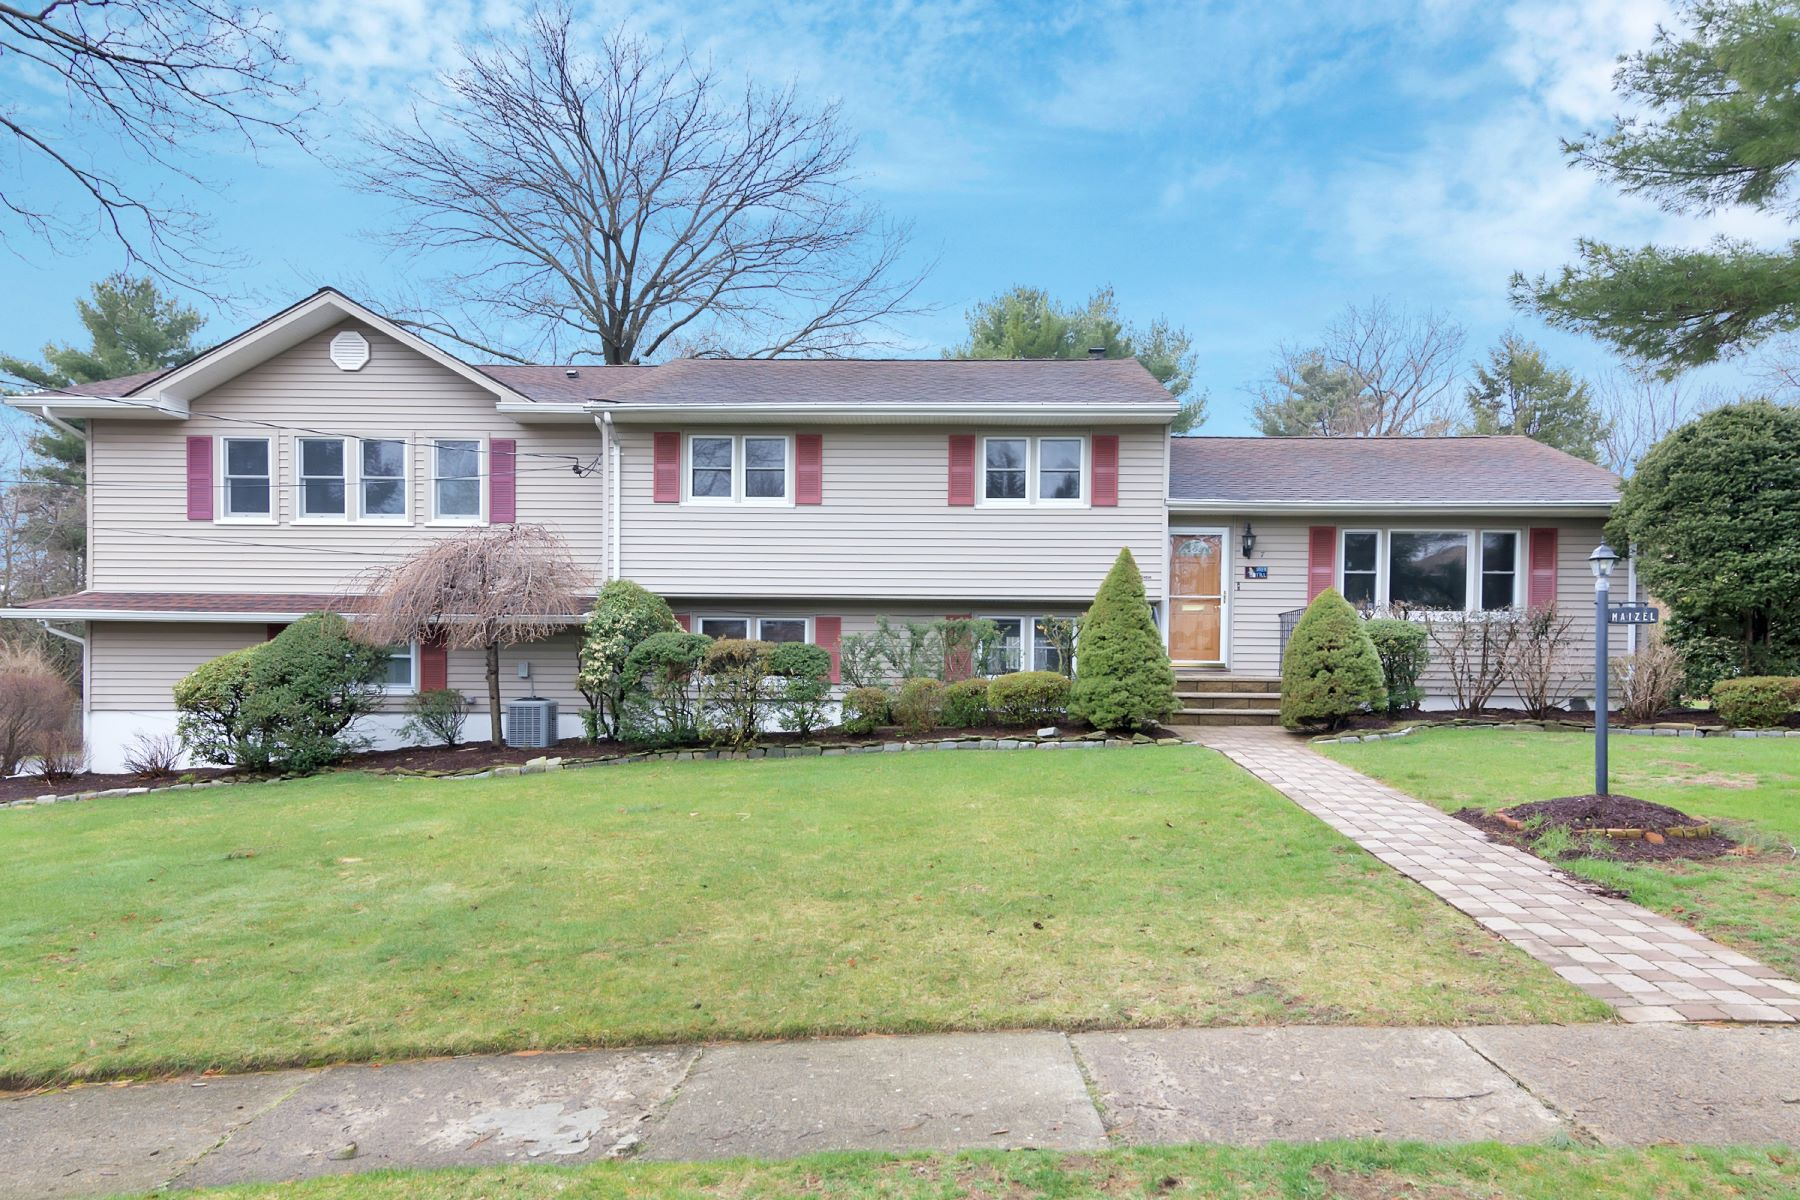 Single Family Home for Sale at Accessible Split Level 7 Allen Drive Wayne, New Jersey 07417 United States